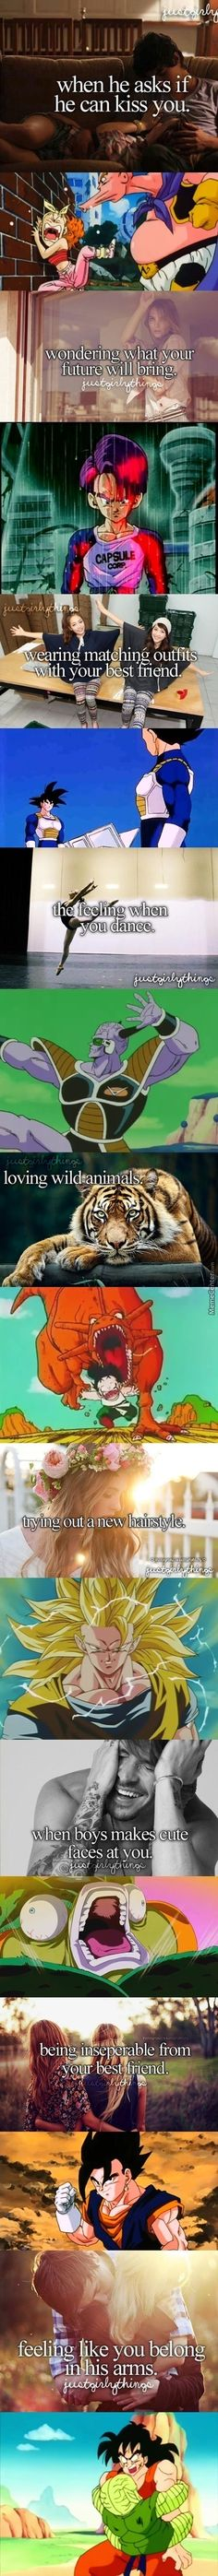 Just Some Dbz Things by finger_v - Meme Center